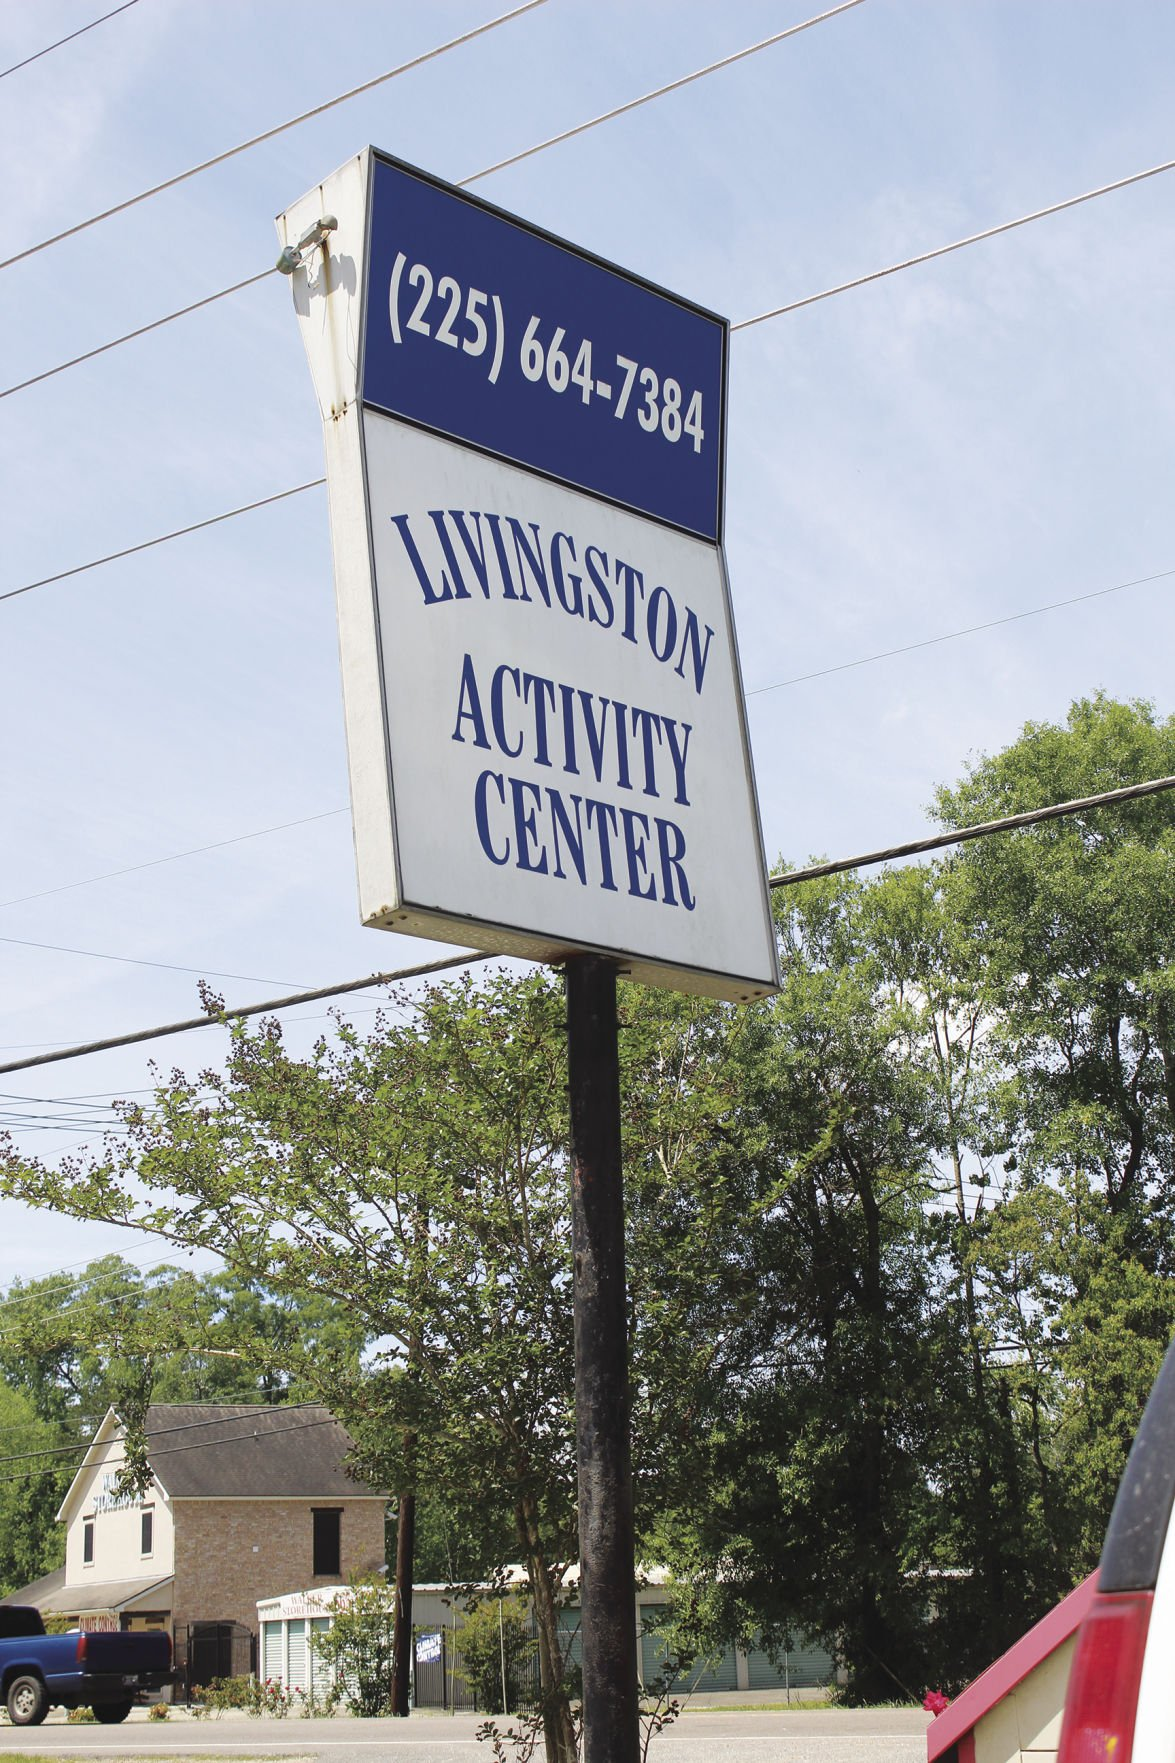 activity center sign